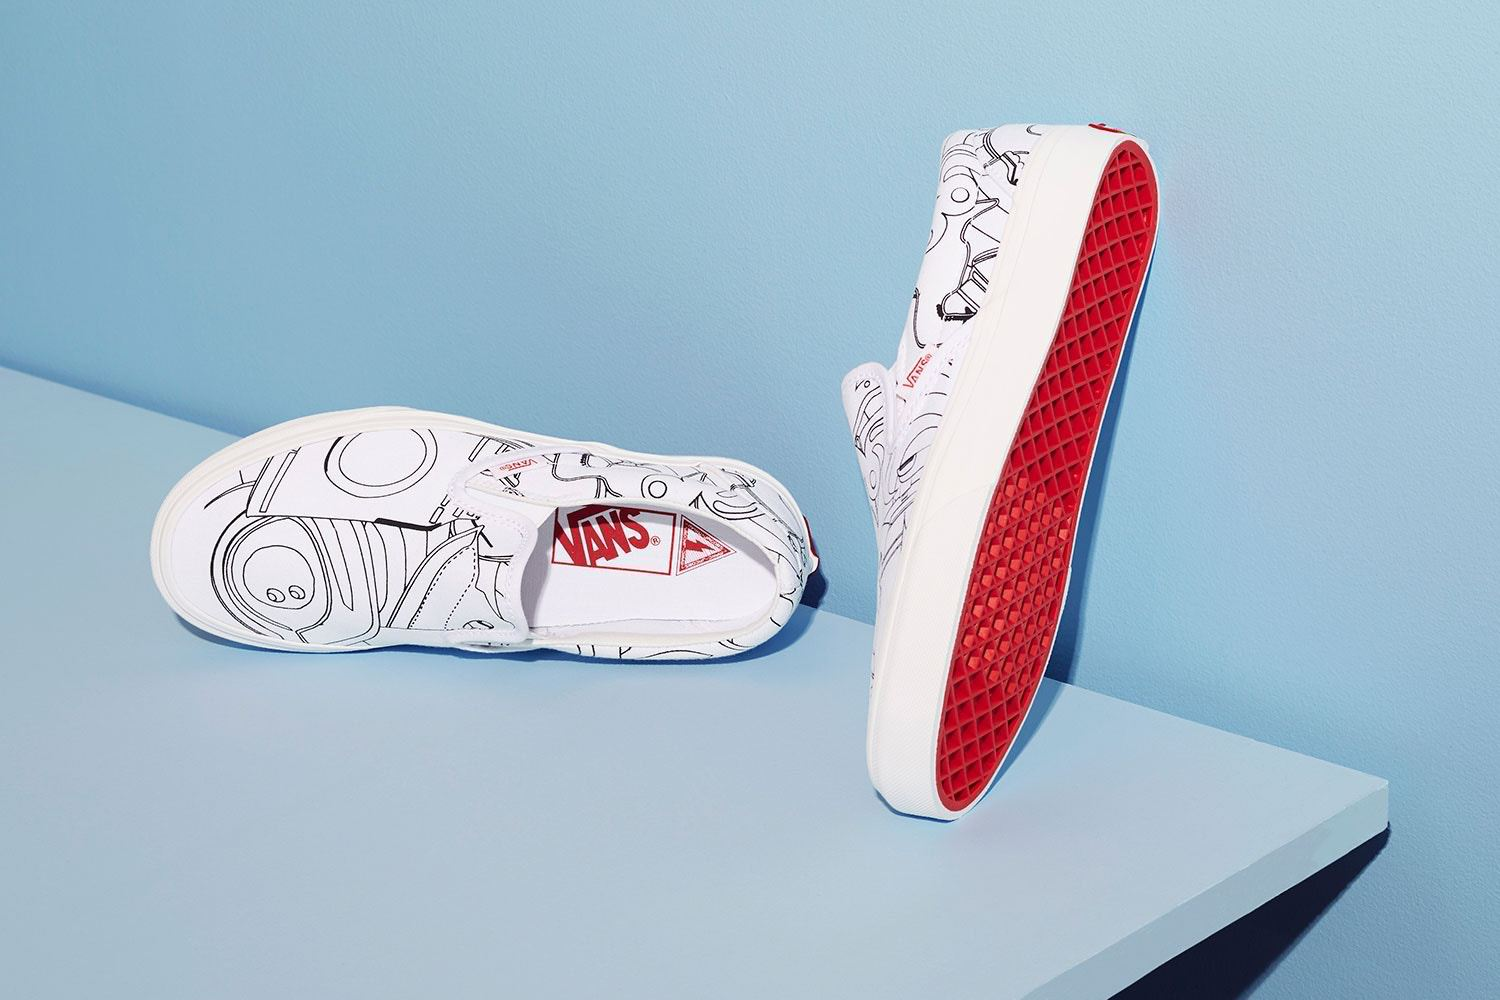 marc jacobs and vans slip on capsule collection - the chicflaneuse.com 4